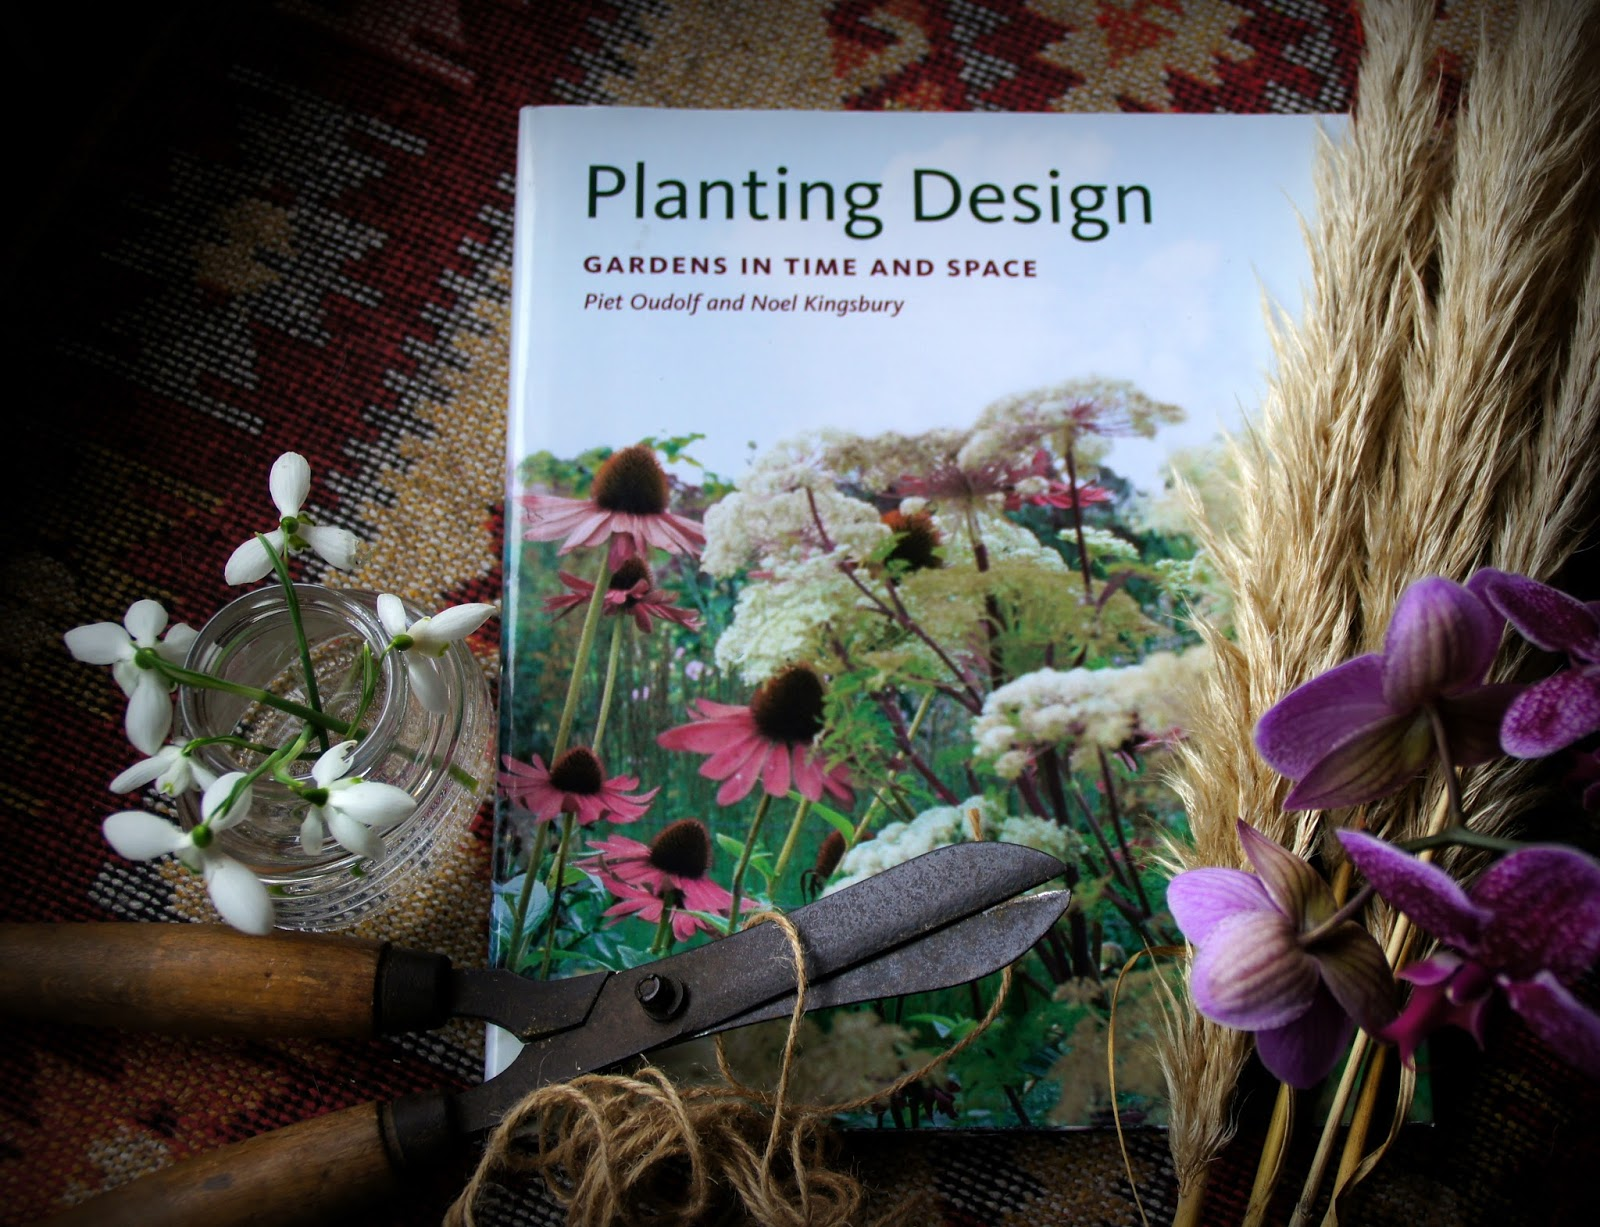 Book Review Planting Design By Piet Oudolf And Noel Kingsbury